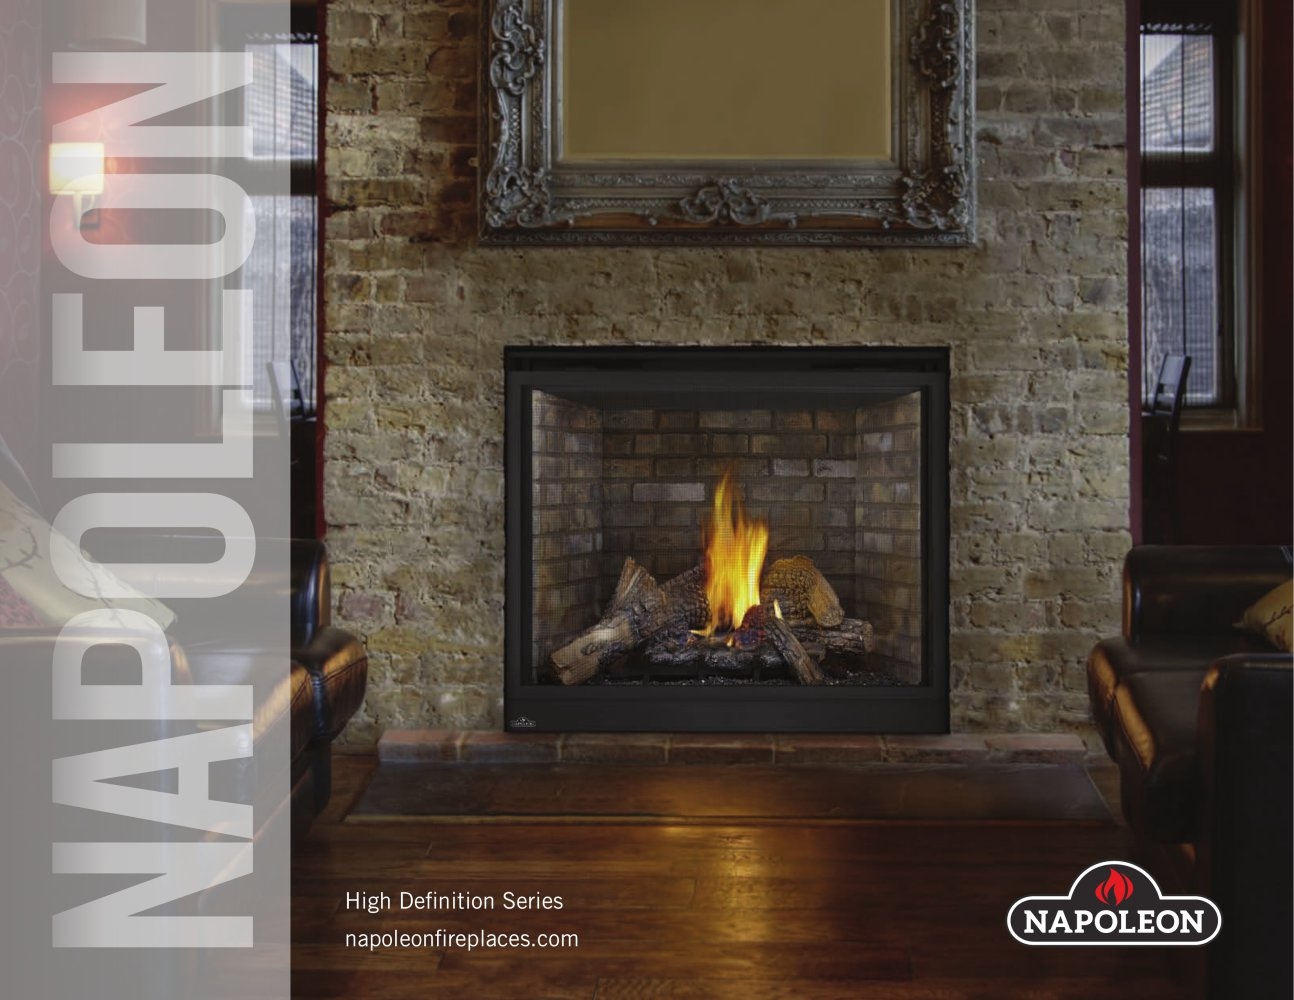 Napoleon Gas Fireplaces The High Definition Series Gas Fireplaces Napoleon Fireplaces